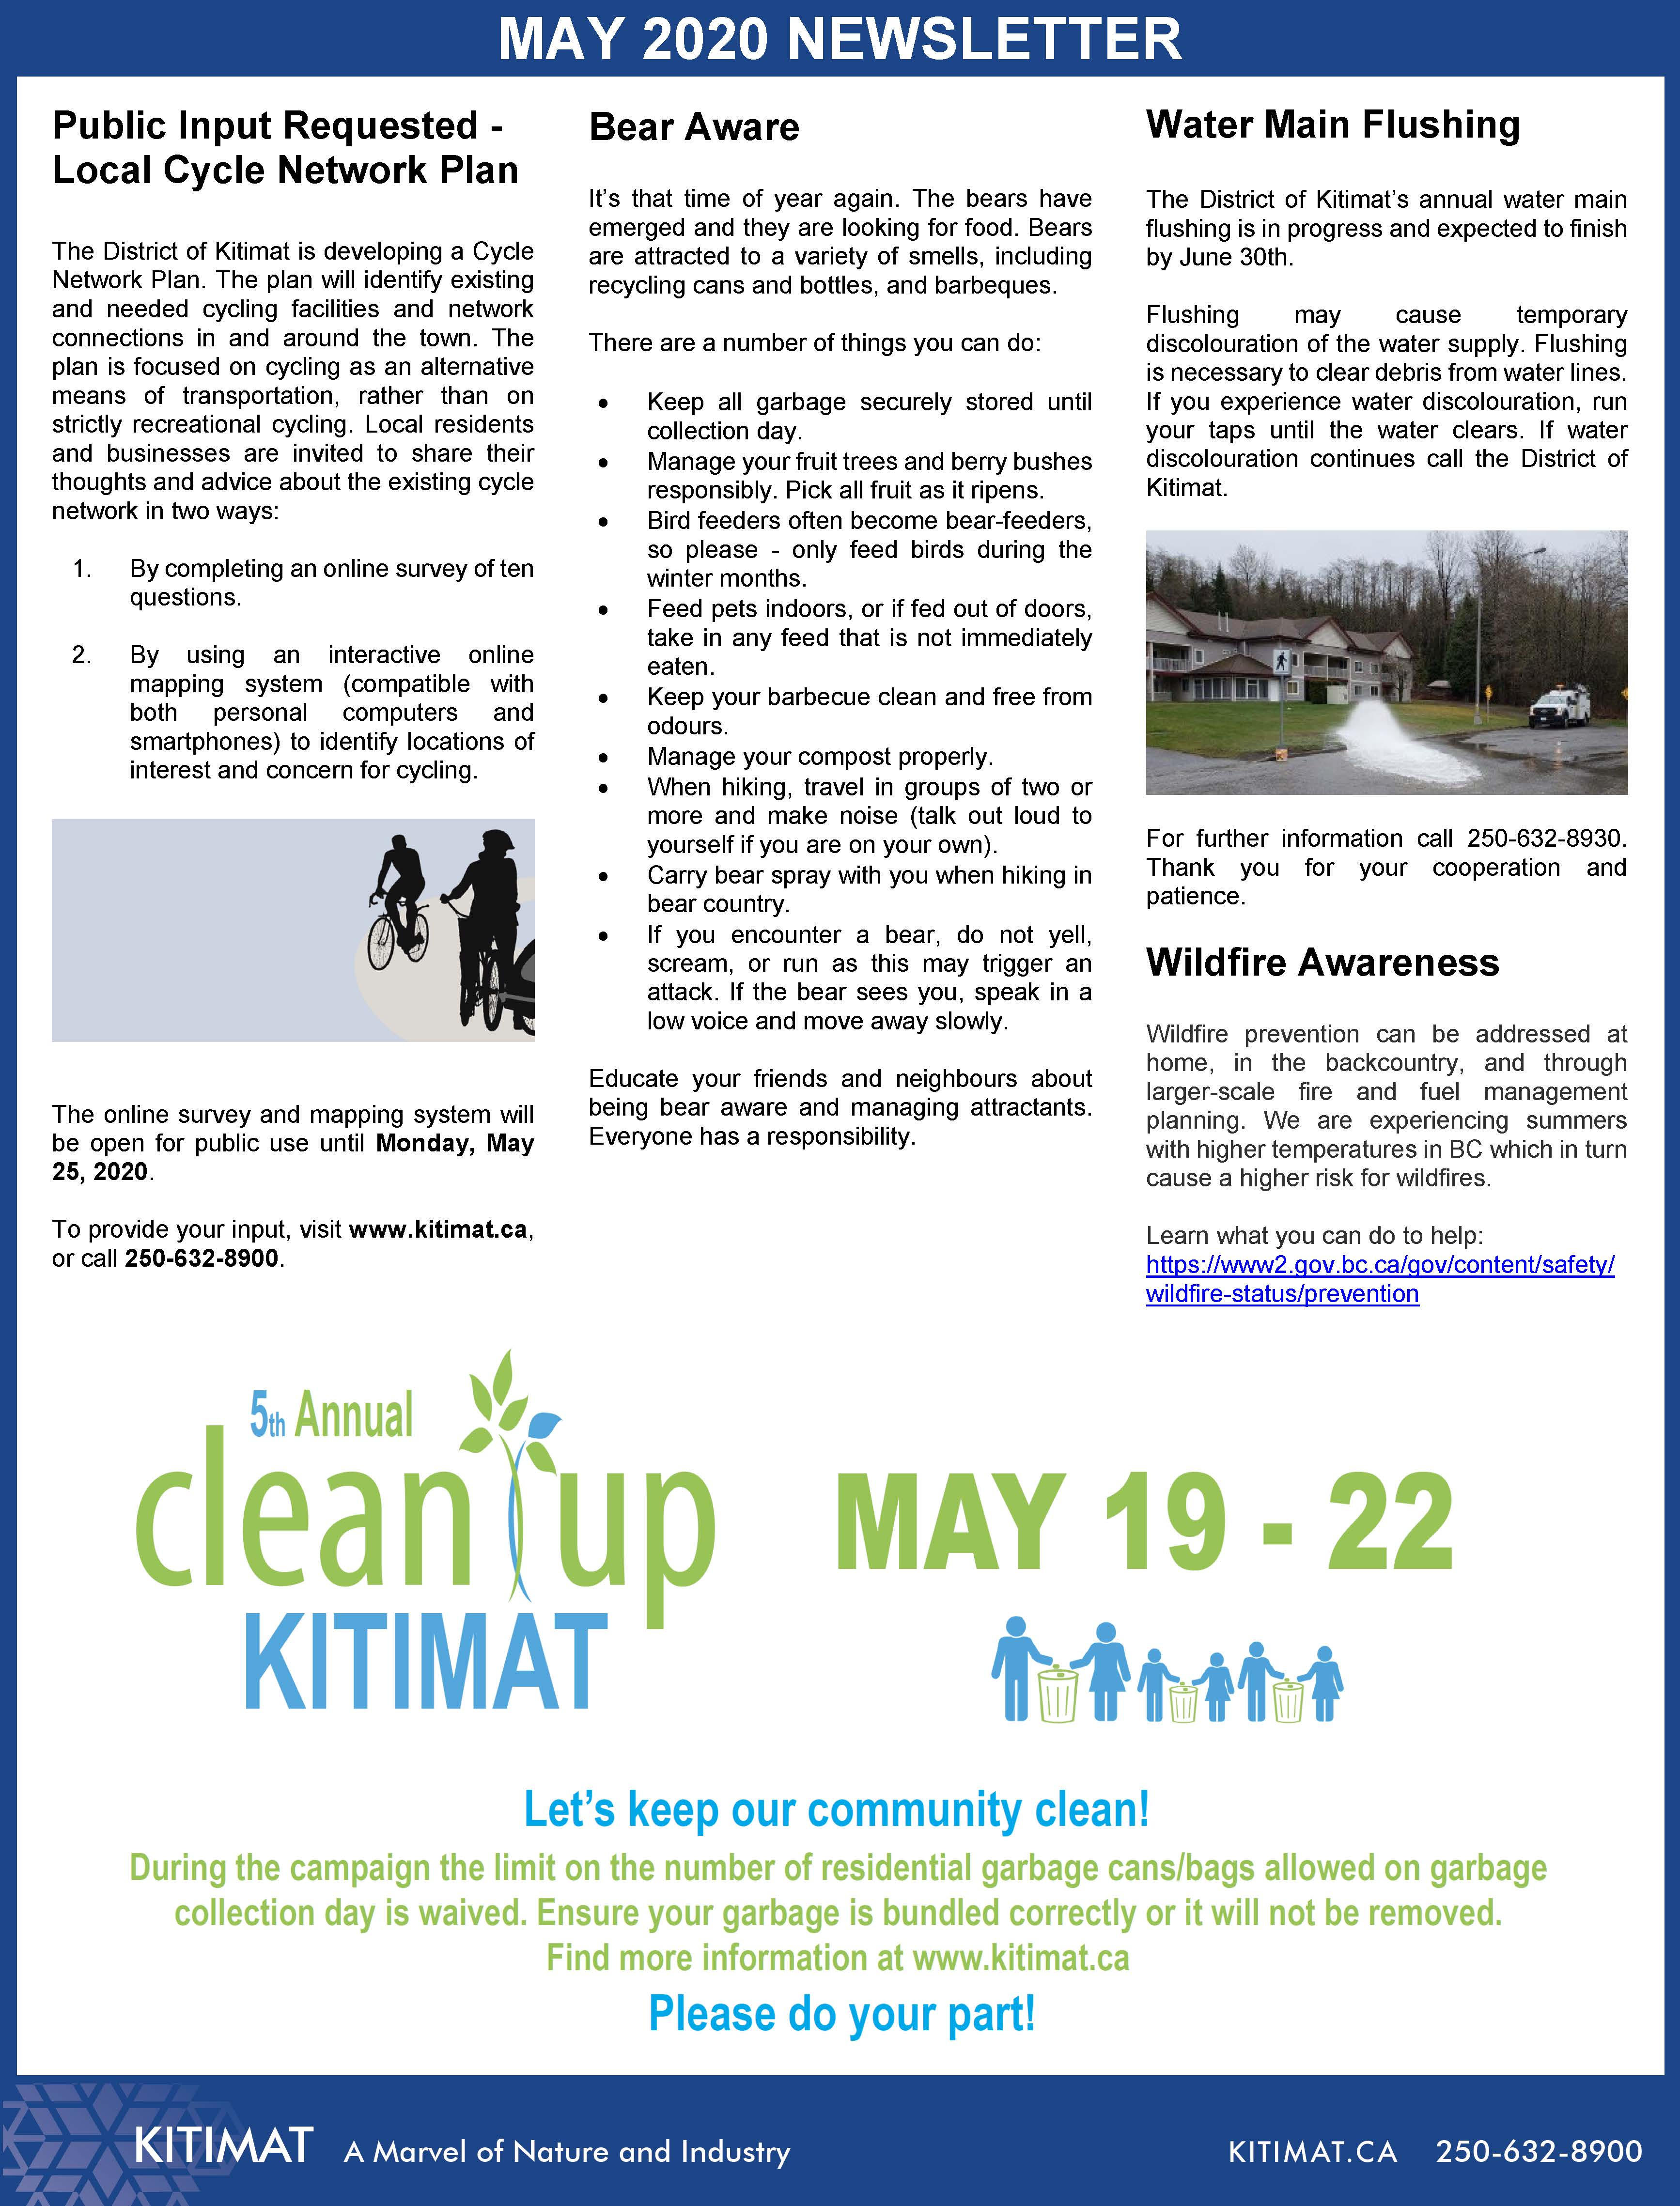 May 2020 DOK Newsletter, page 2 of 2